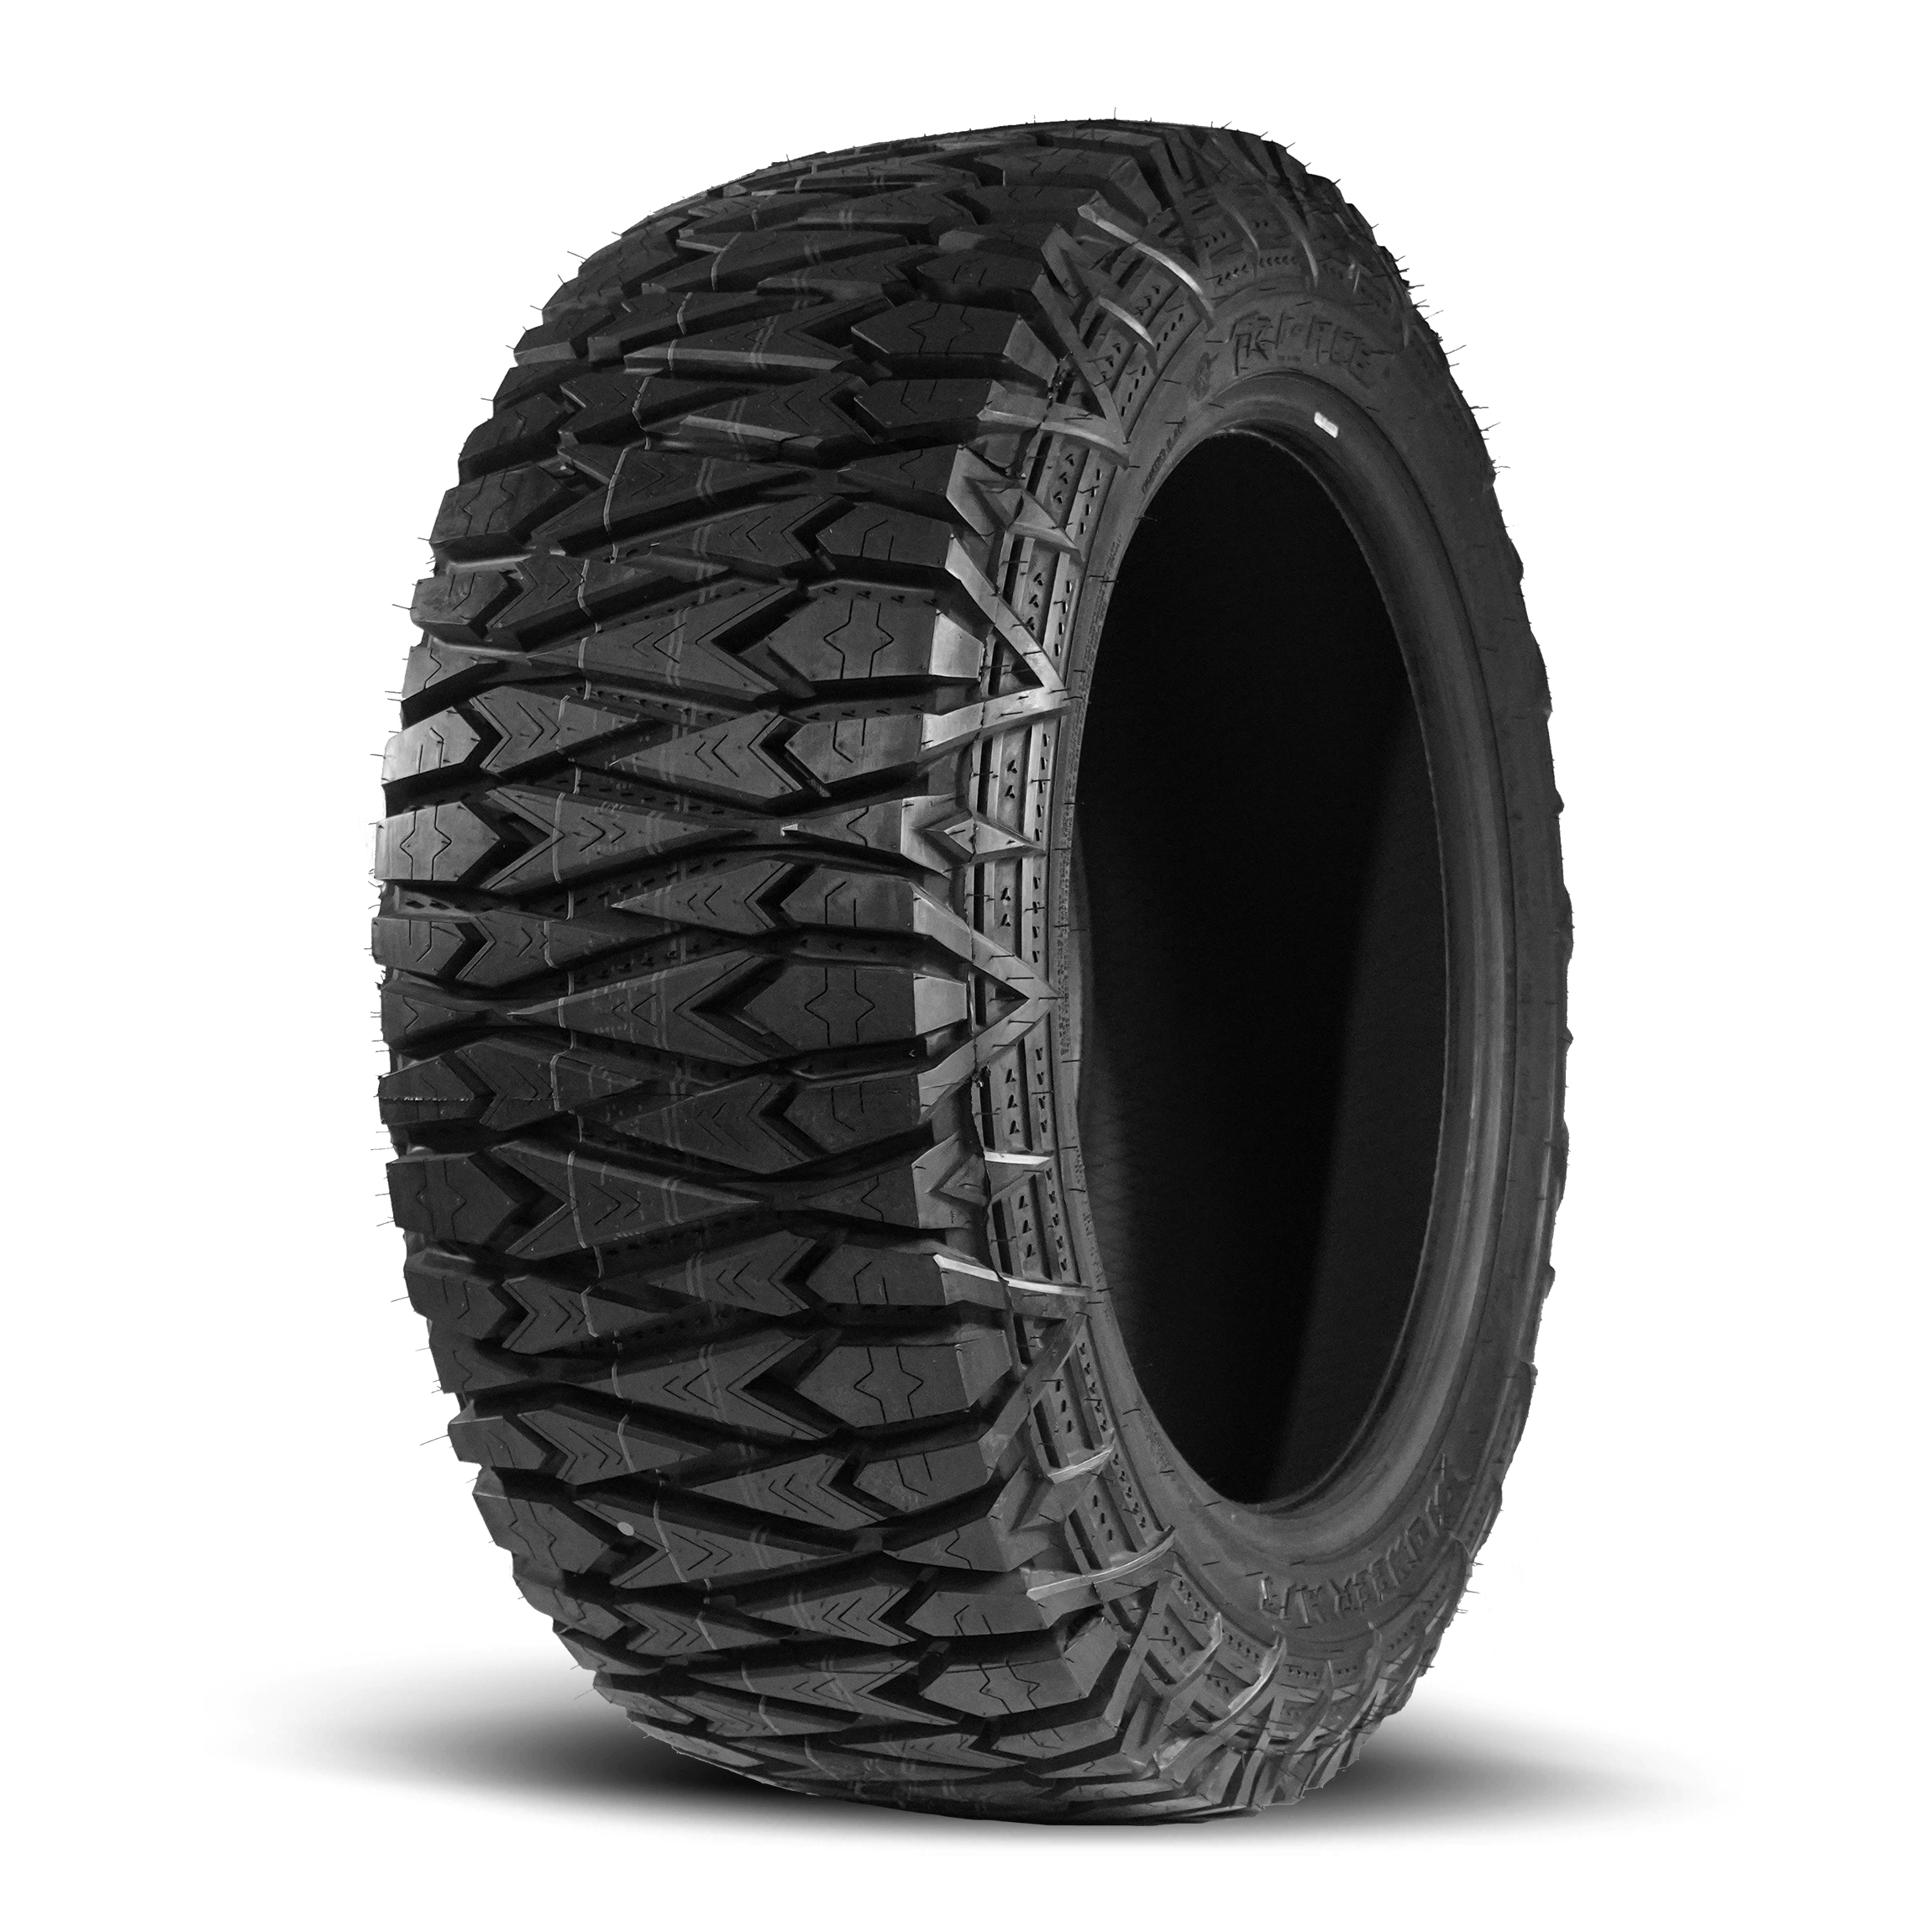 35X13.50R26 Tri-Ace Pioneer M/T 118Q 10PLY – Tyres Gator – Tires and Wheels